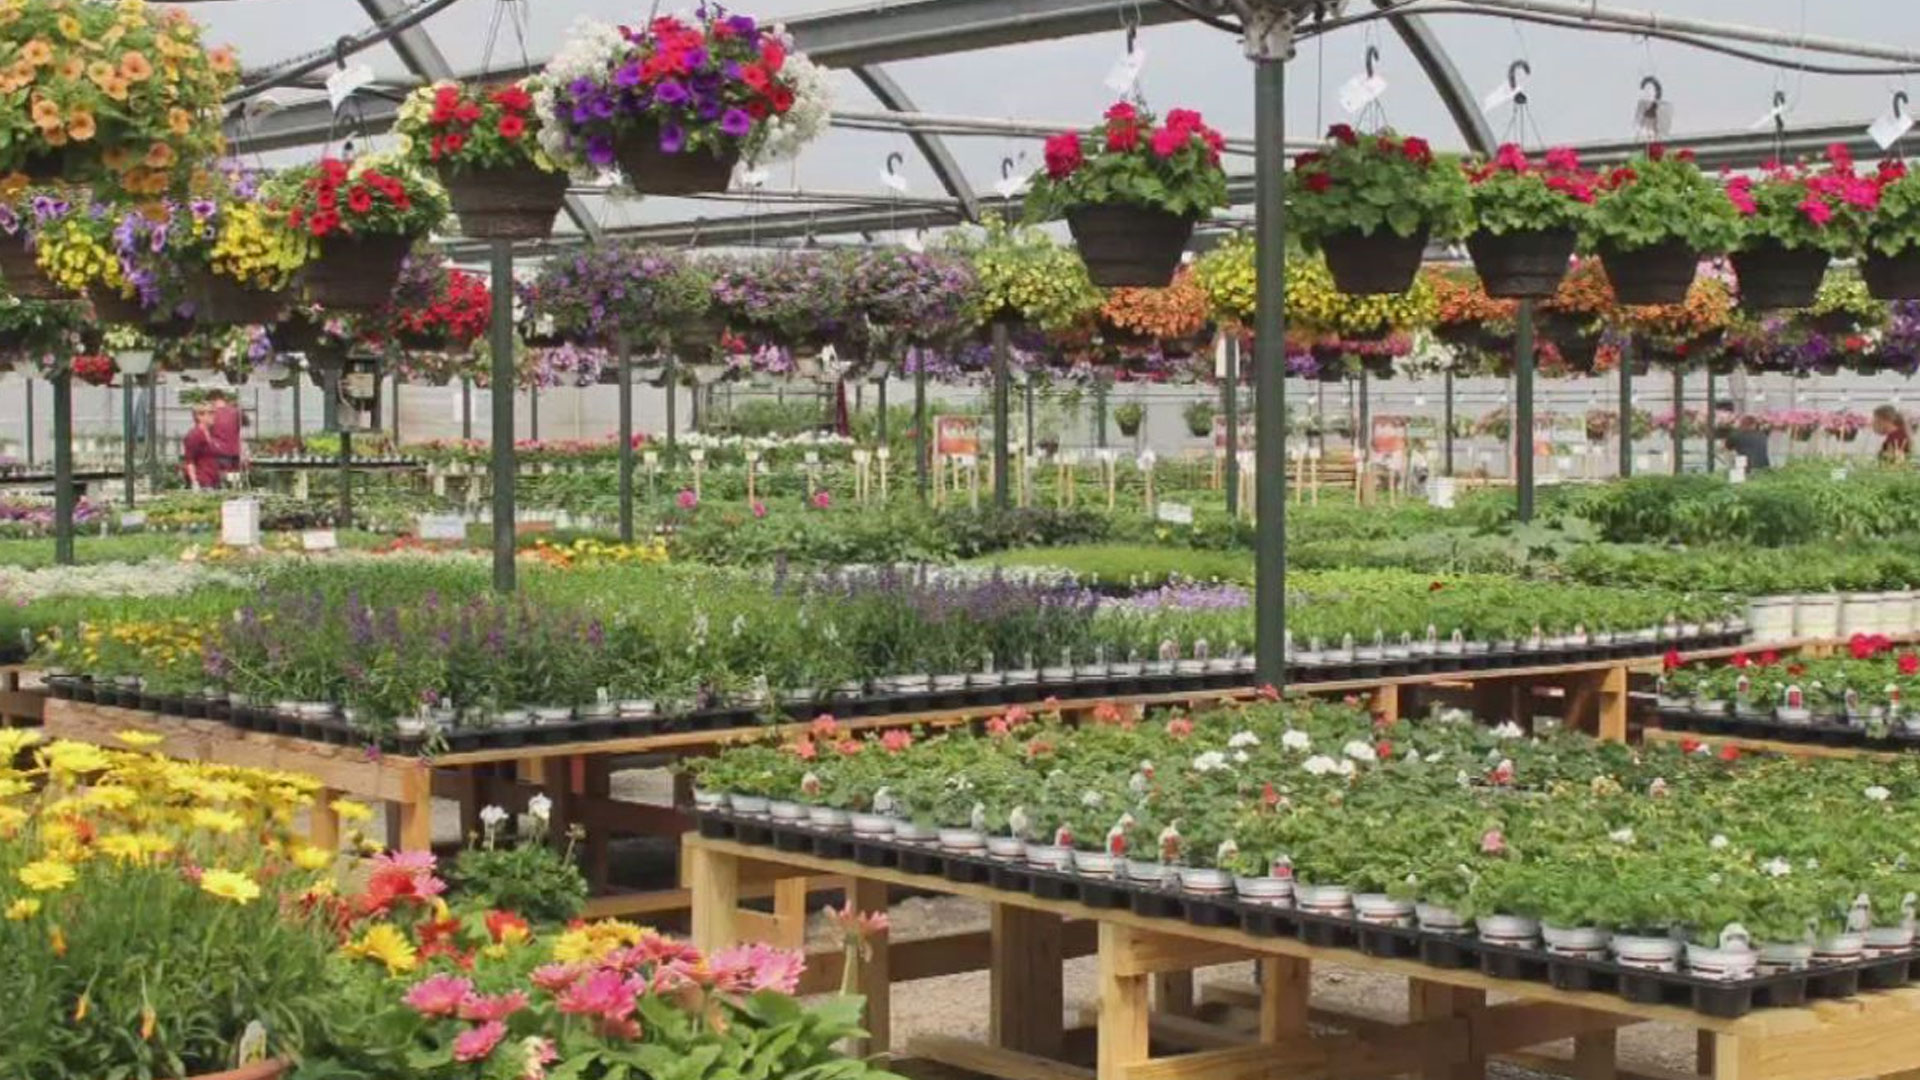 Top Spots 5 Of The Best Greenhouses And Garden Centers In Central